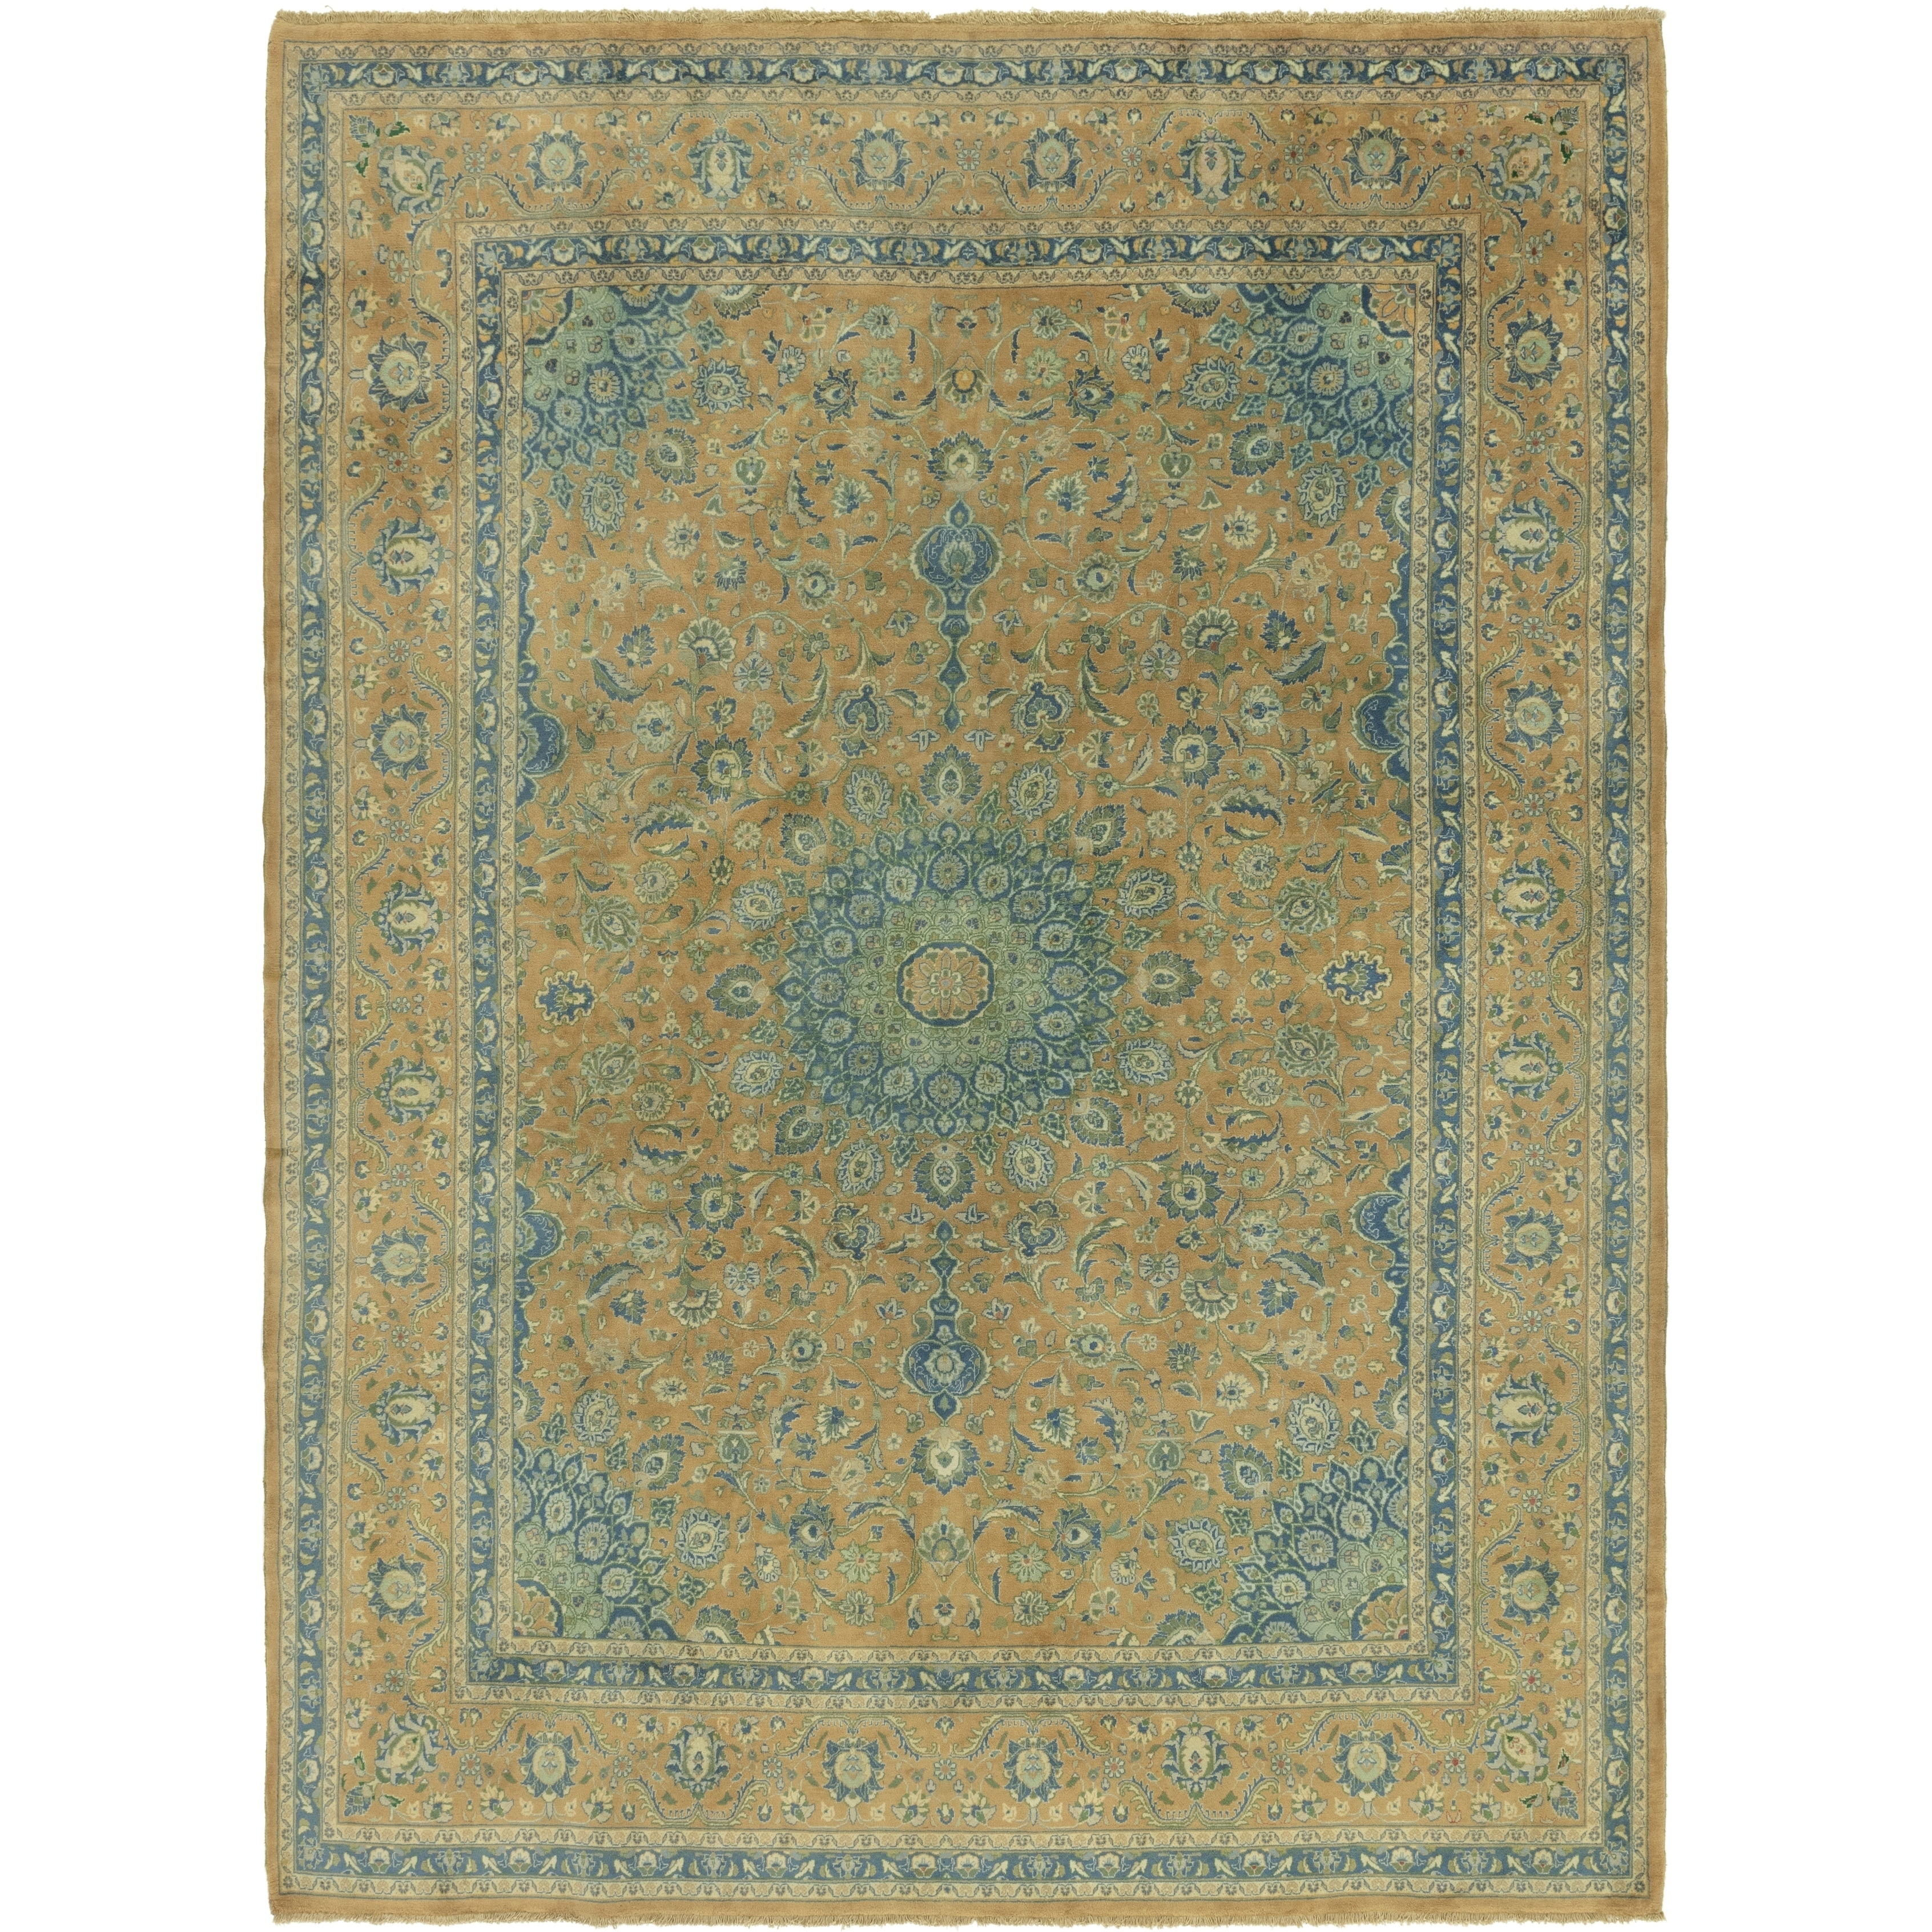 Hand Knotted Kashmar Semi Antique Wool Area Rug - 9 8 x 13 3 (peach - 9 8 x 13 3)